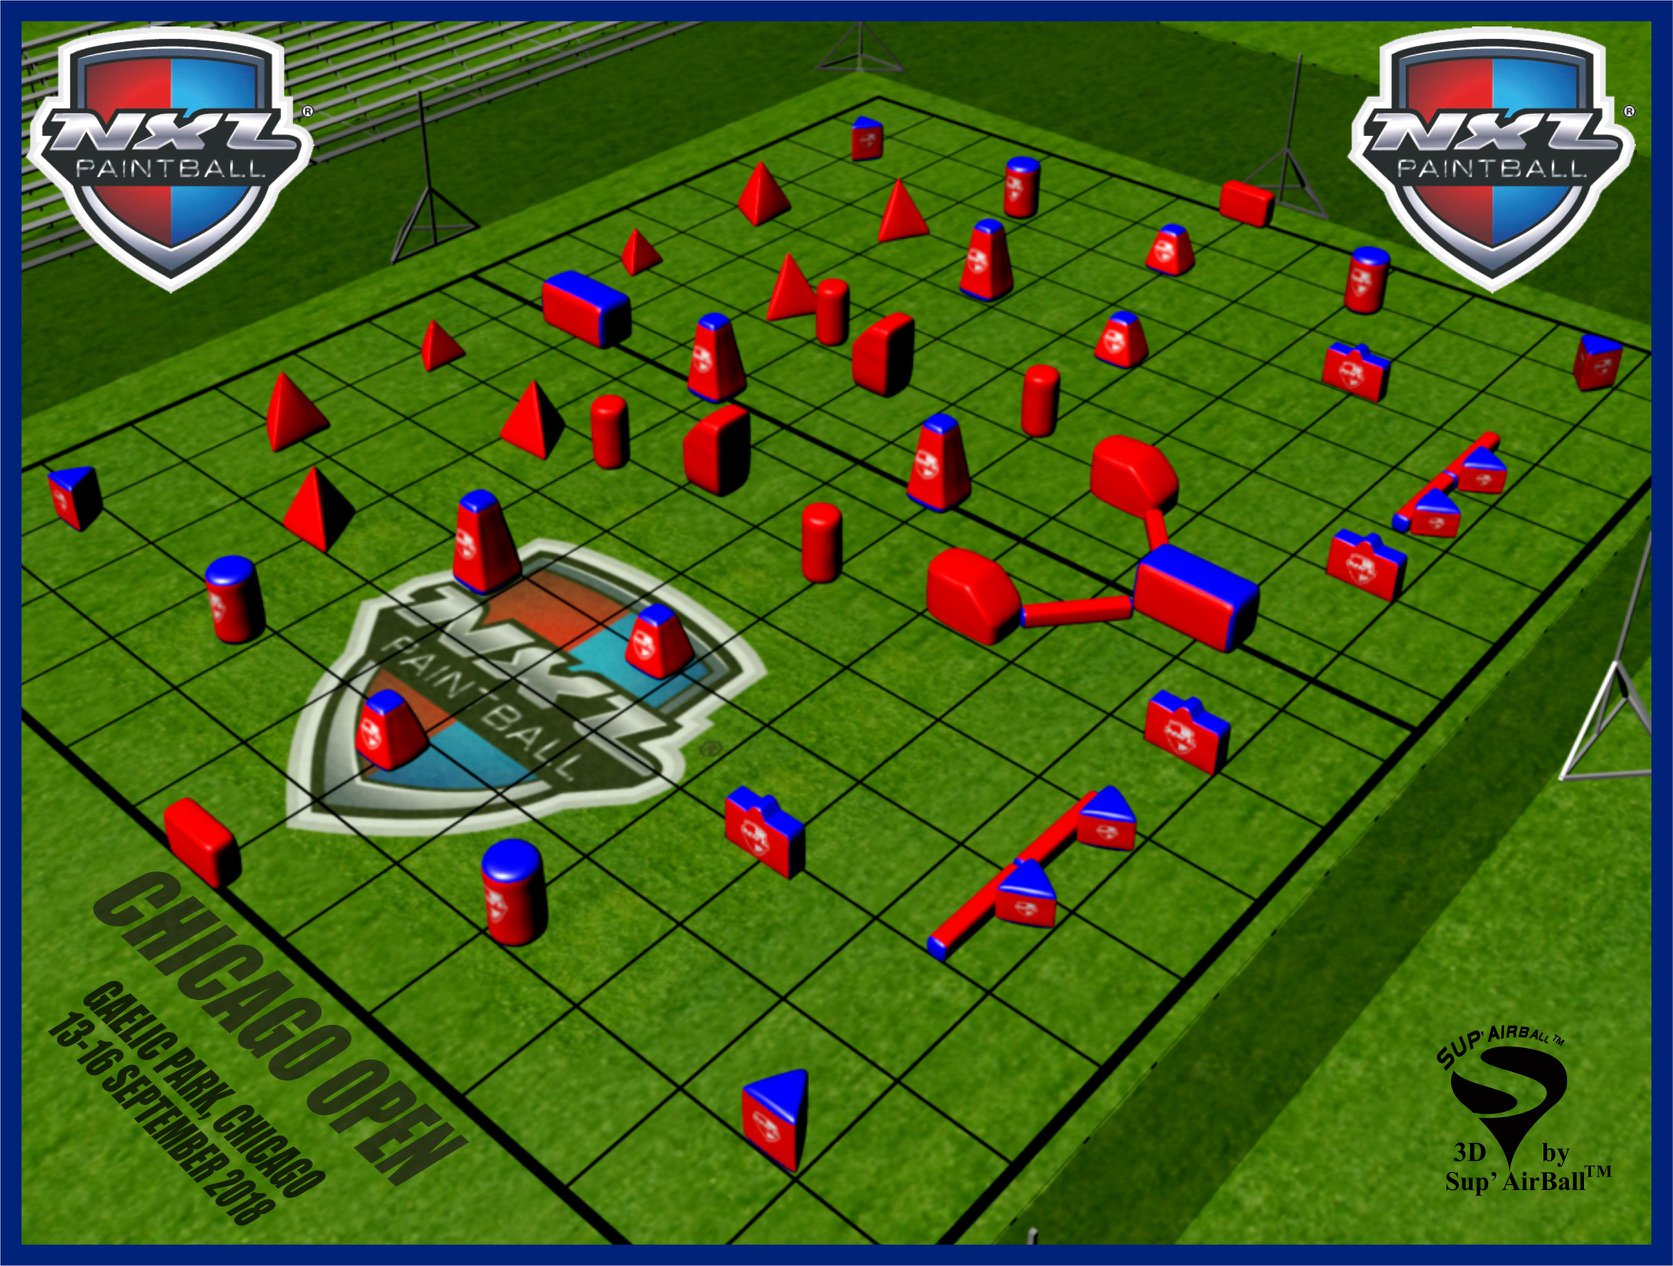 nxl2018chicago_layout1.jpg